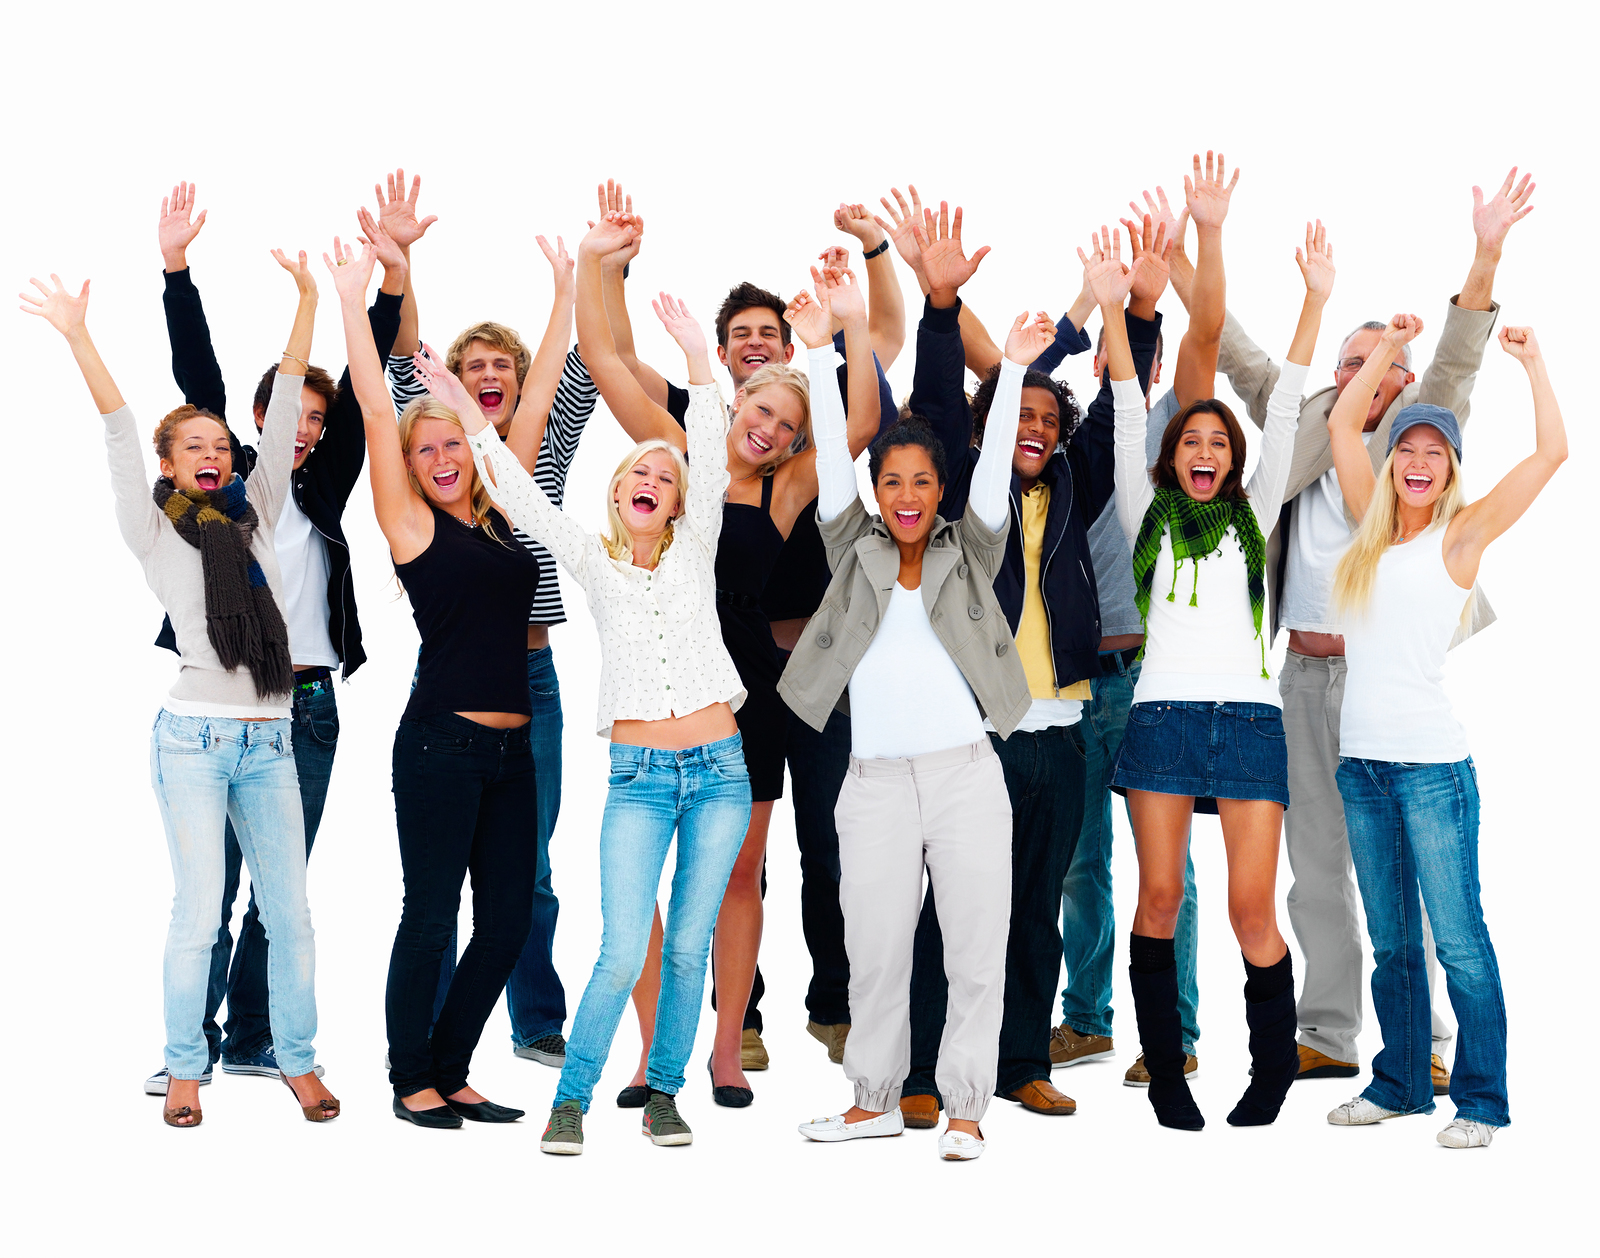 group_of_smiling_friends_stand_4034765